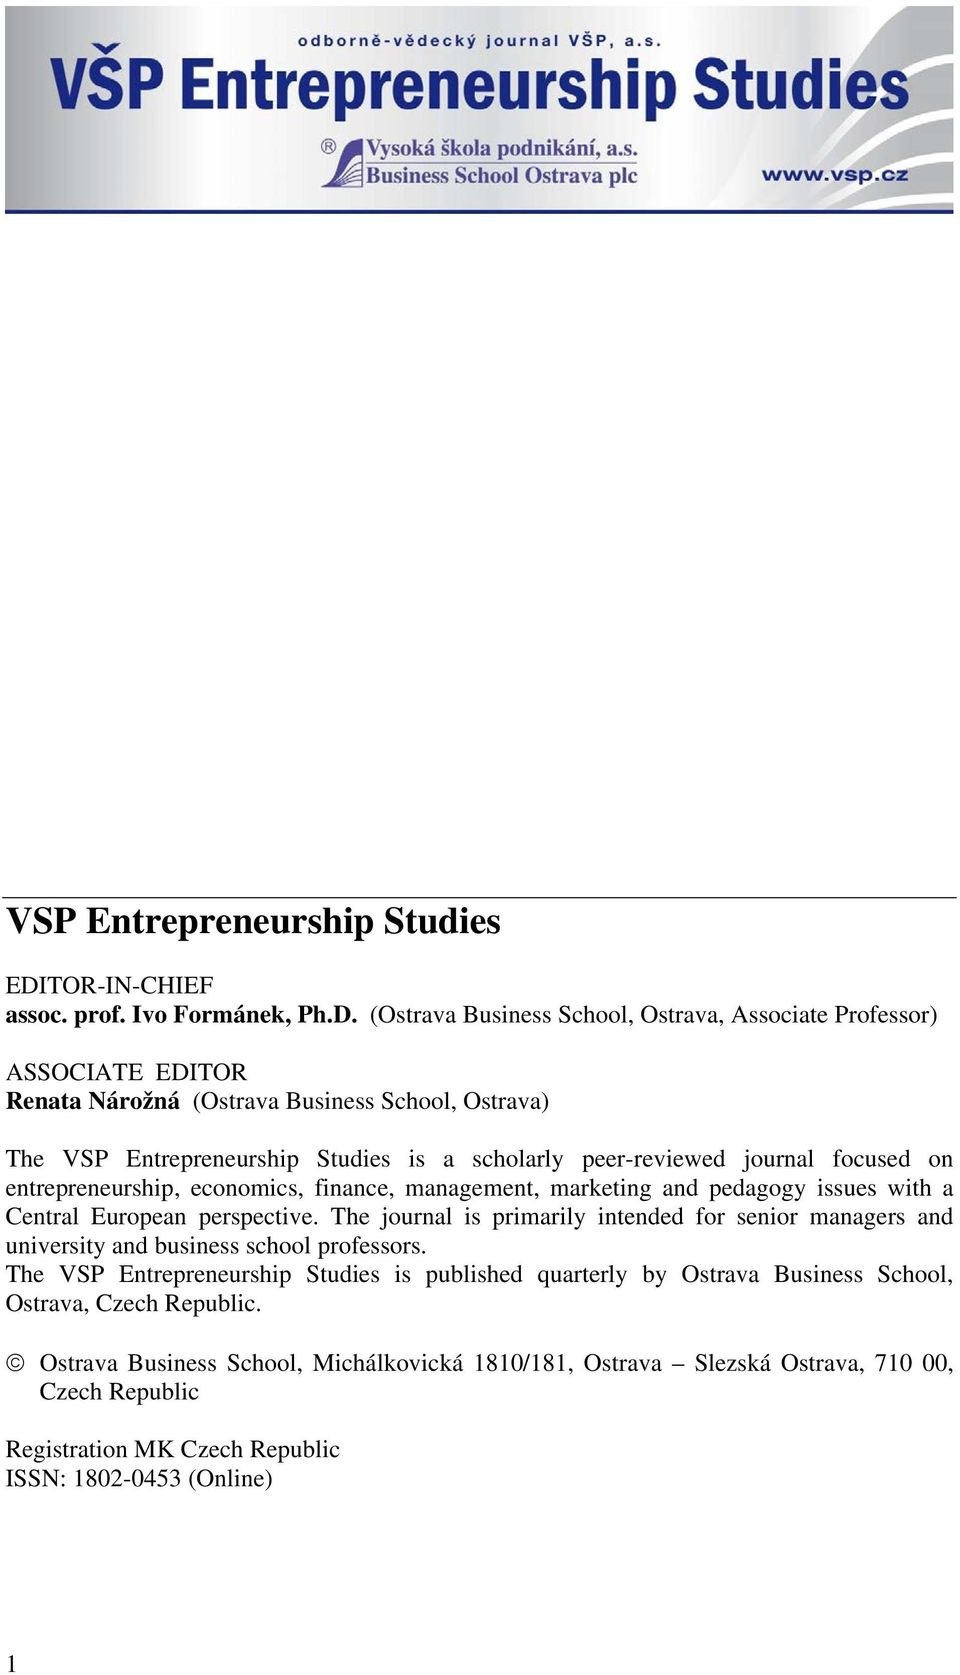 (Ostrava Business School, Ostrava, Associate Professor) ASSOCIATE EDITOR Renata Nárožná (Ostrava Business School, Ostrava) The VSP Entrepreneurship Studies is a scholarly peer-reviewed journal